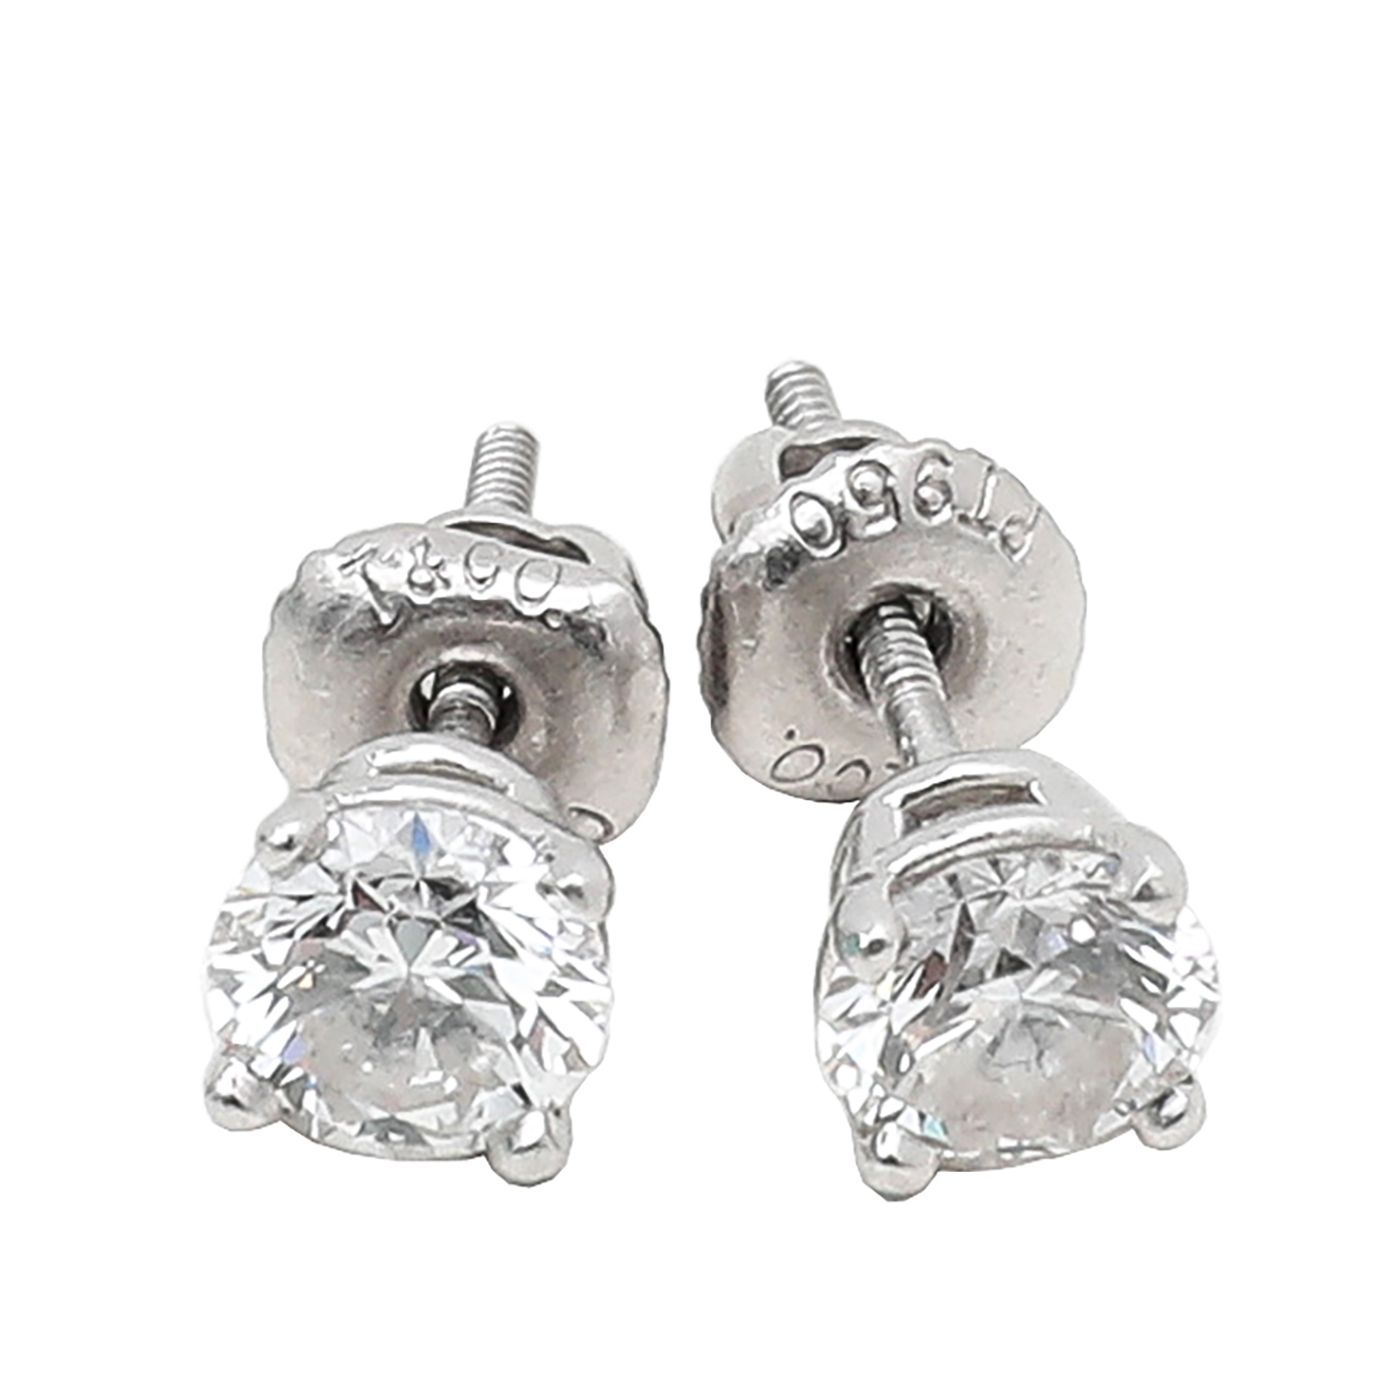 Tiffany & Co Platinum Solitaire Diamond Earrings